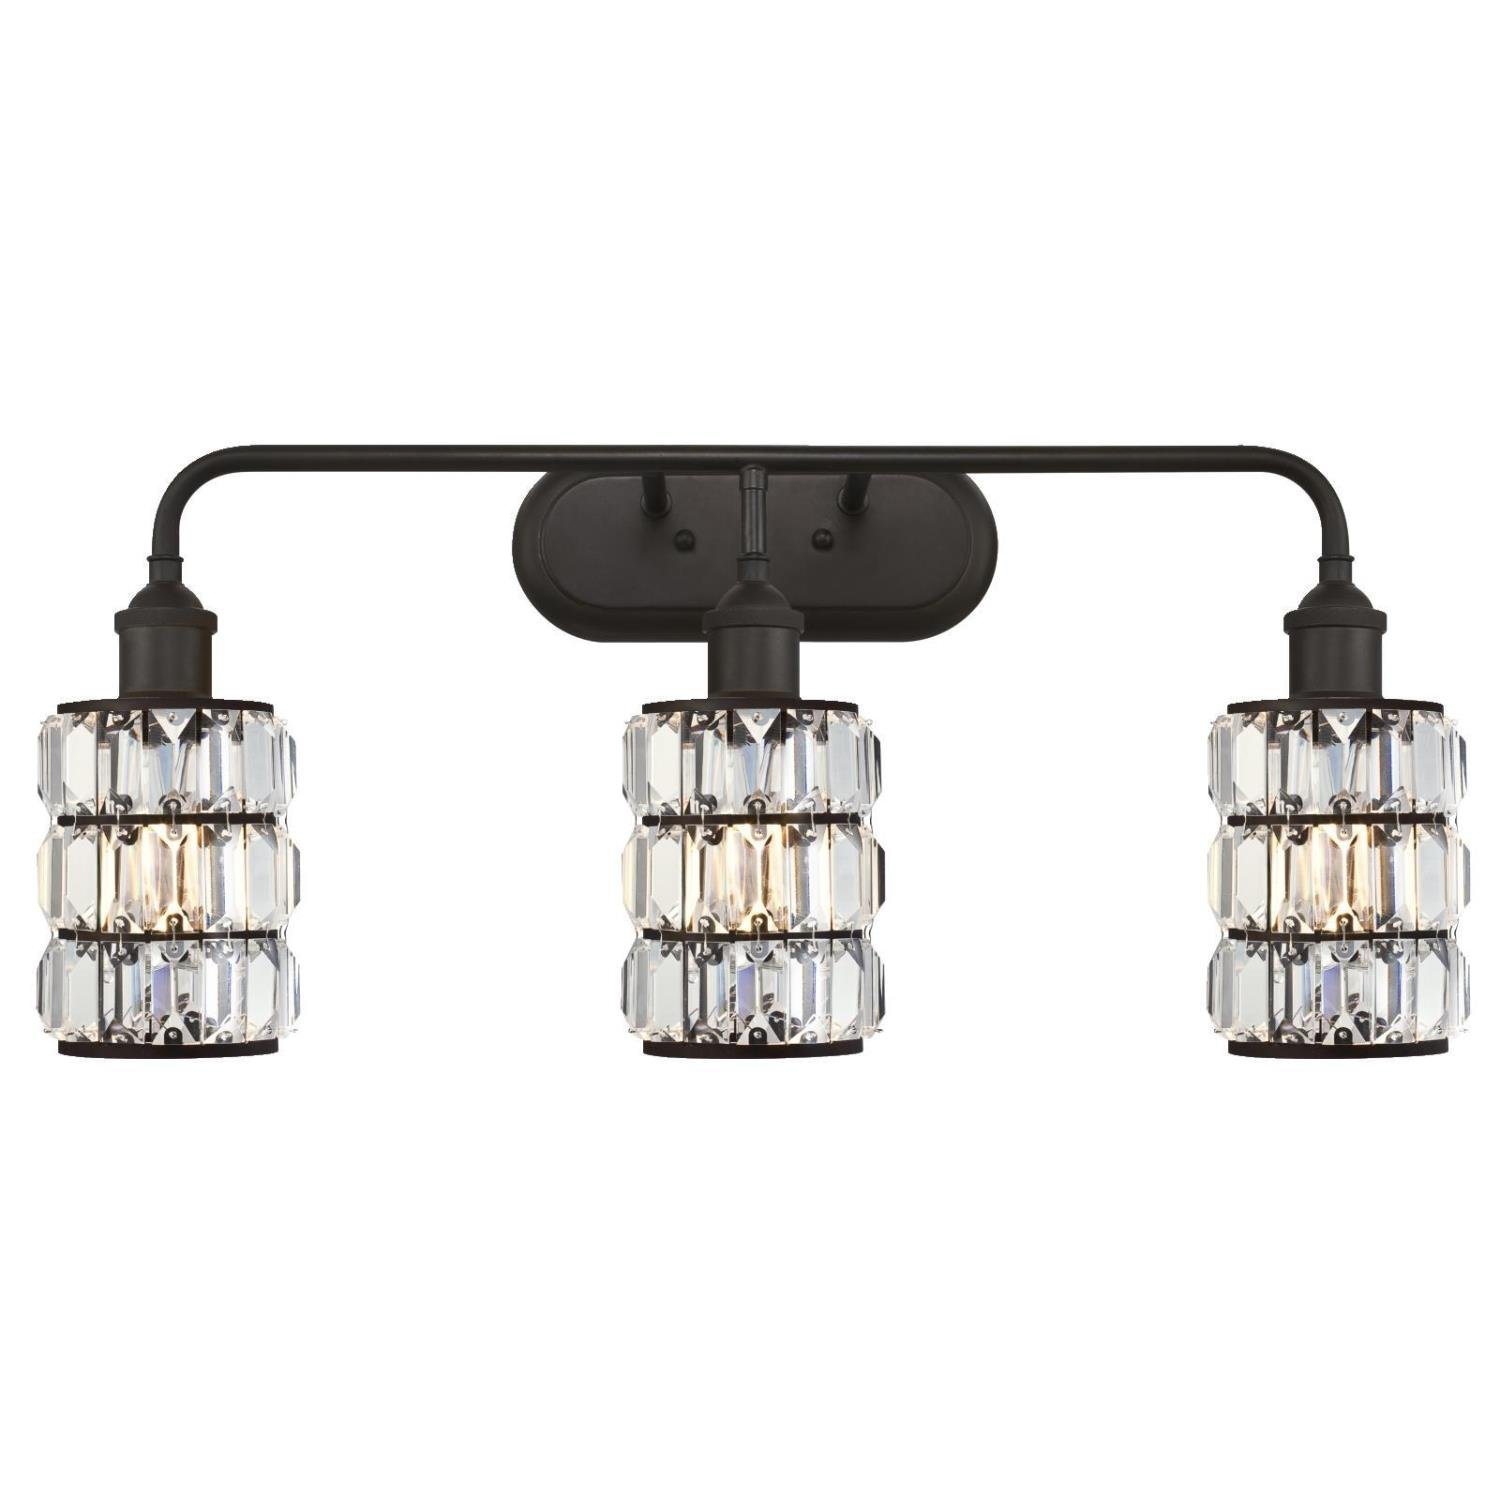 Westinghouse 6337900 Sophie Three-Light Indoor Wall Fixture, Oil Rubbed Bronze Finish with Crystal Prism Glass by Westinghouse